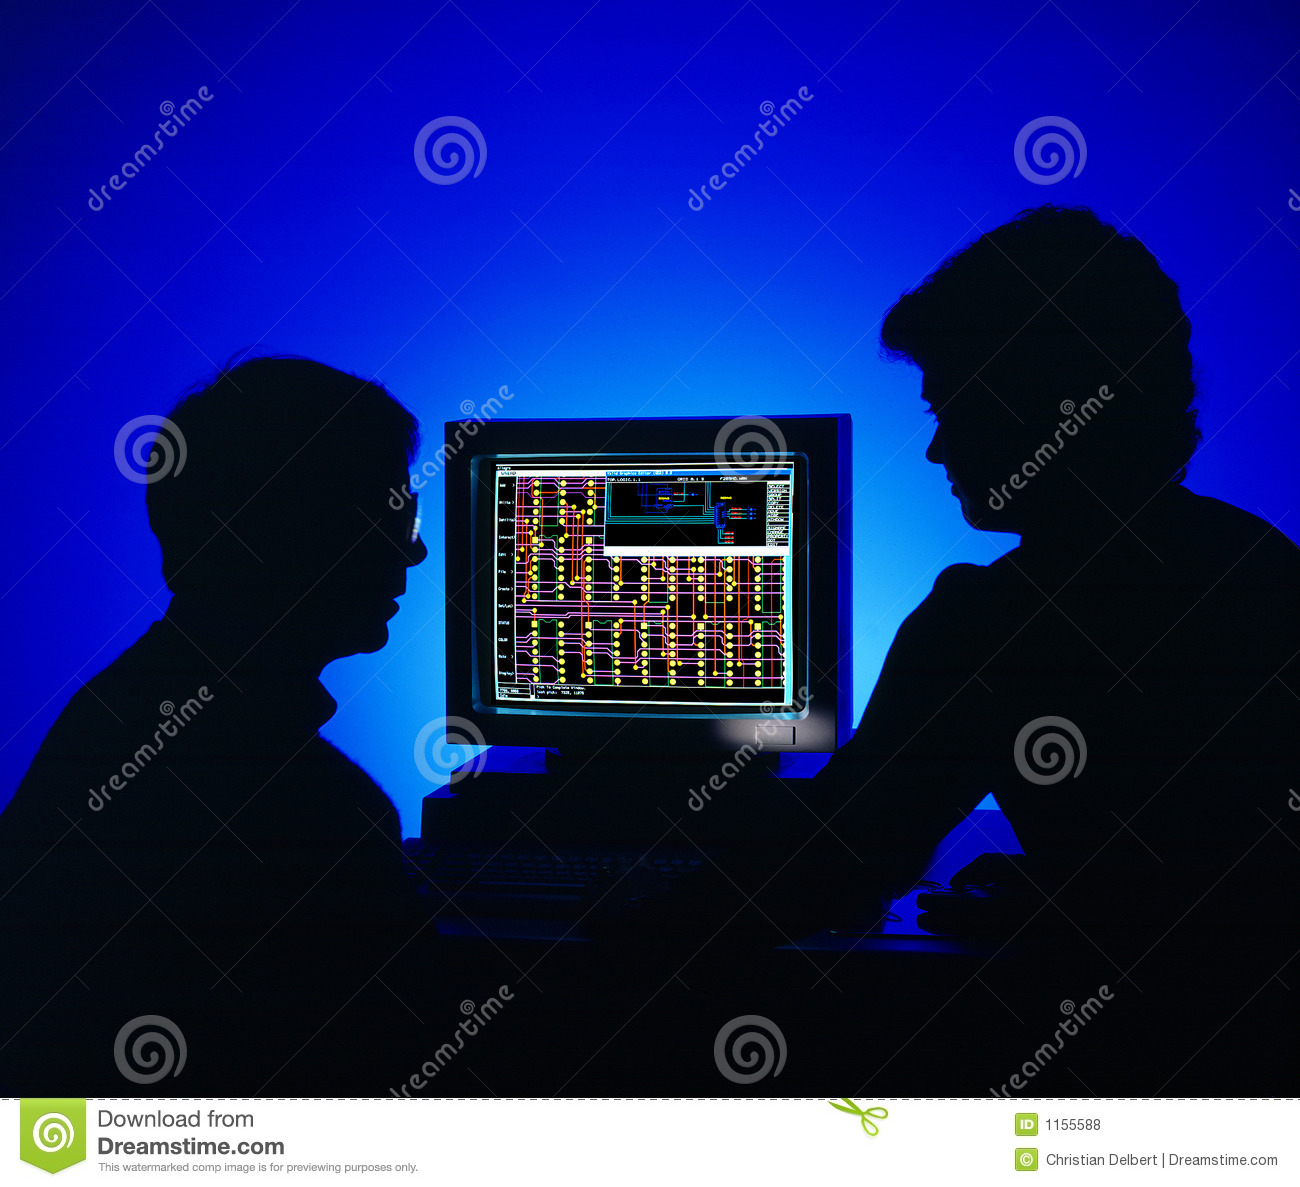 Computer viewers